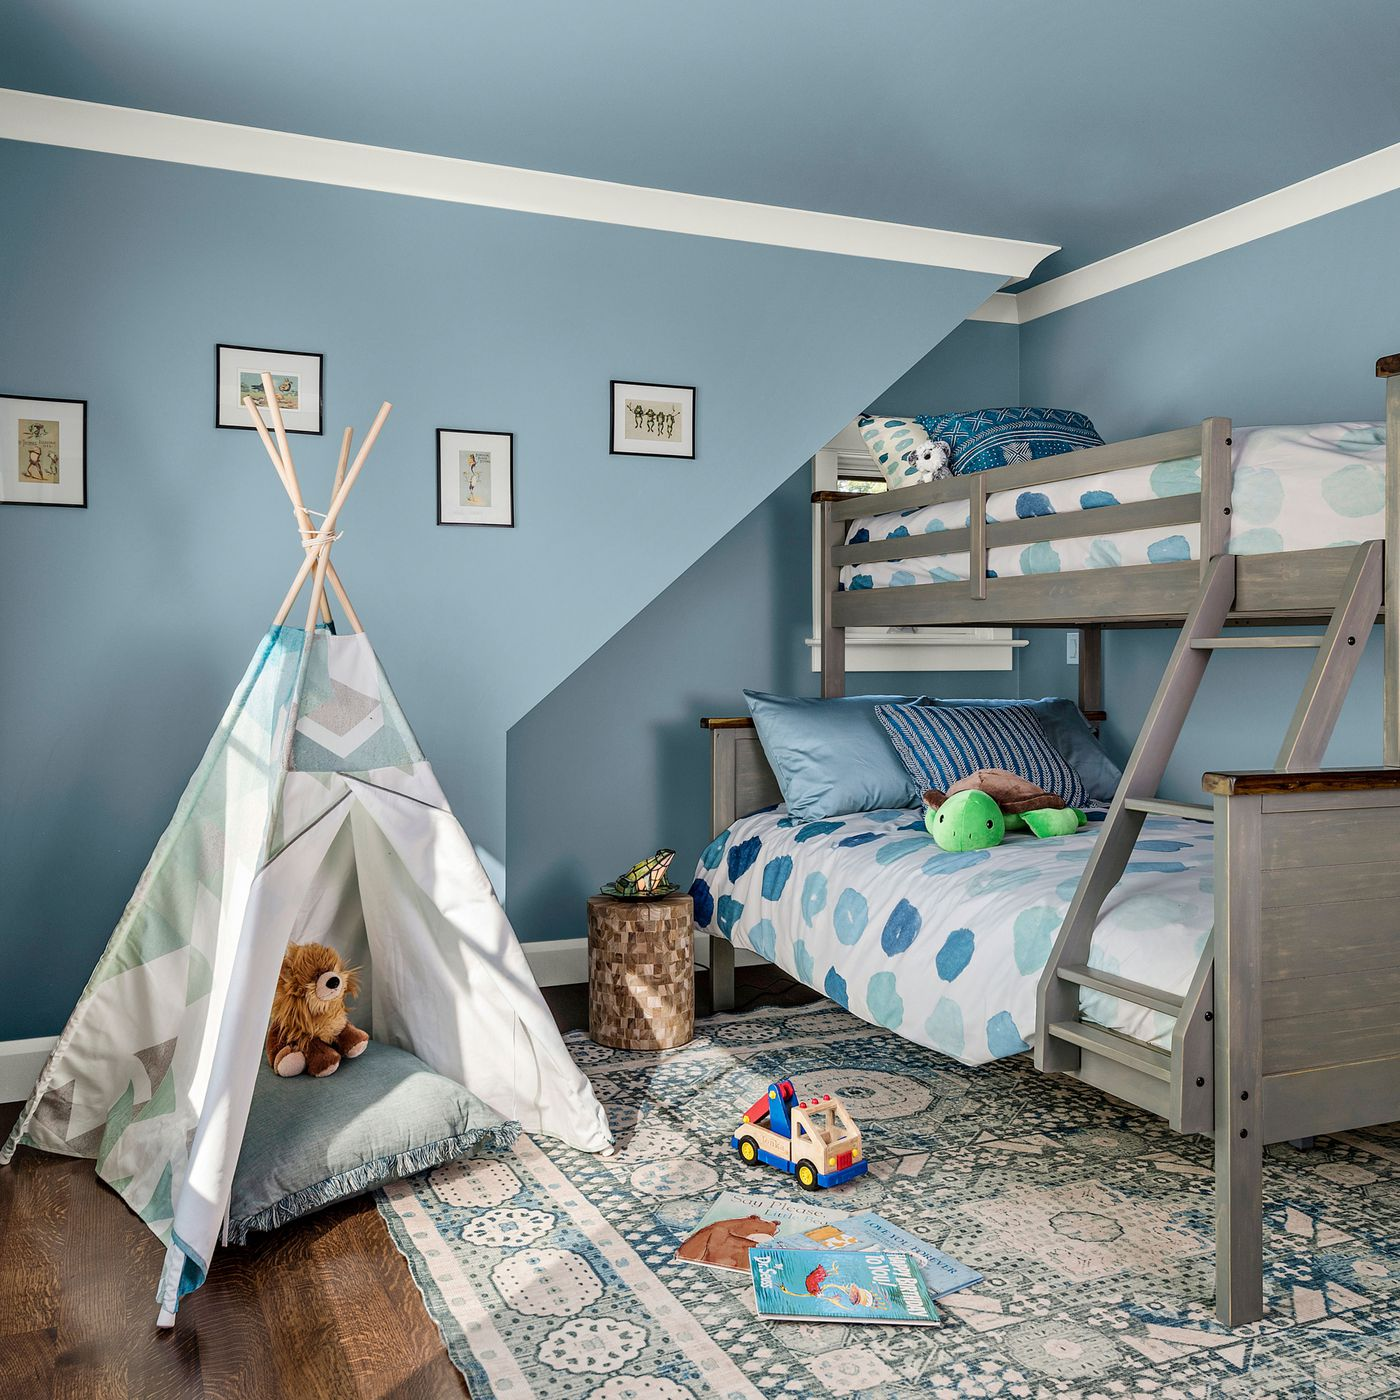 Kids Room Renovation Guide This Old House